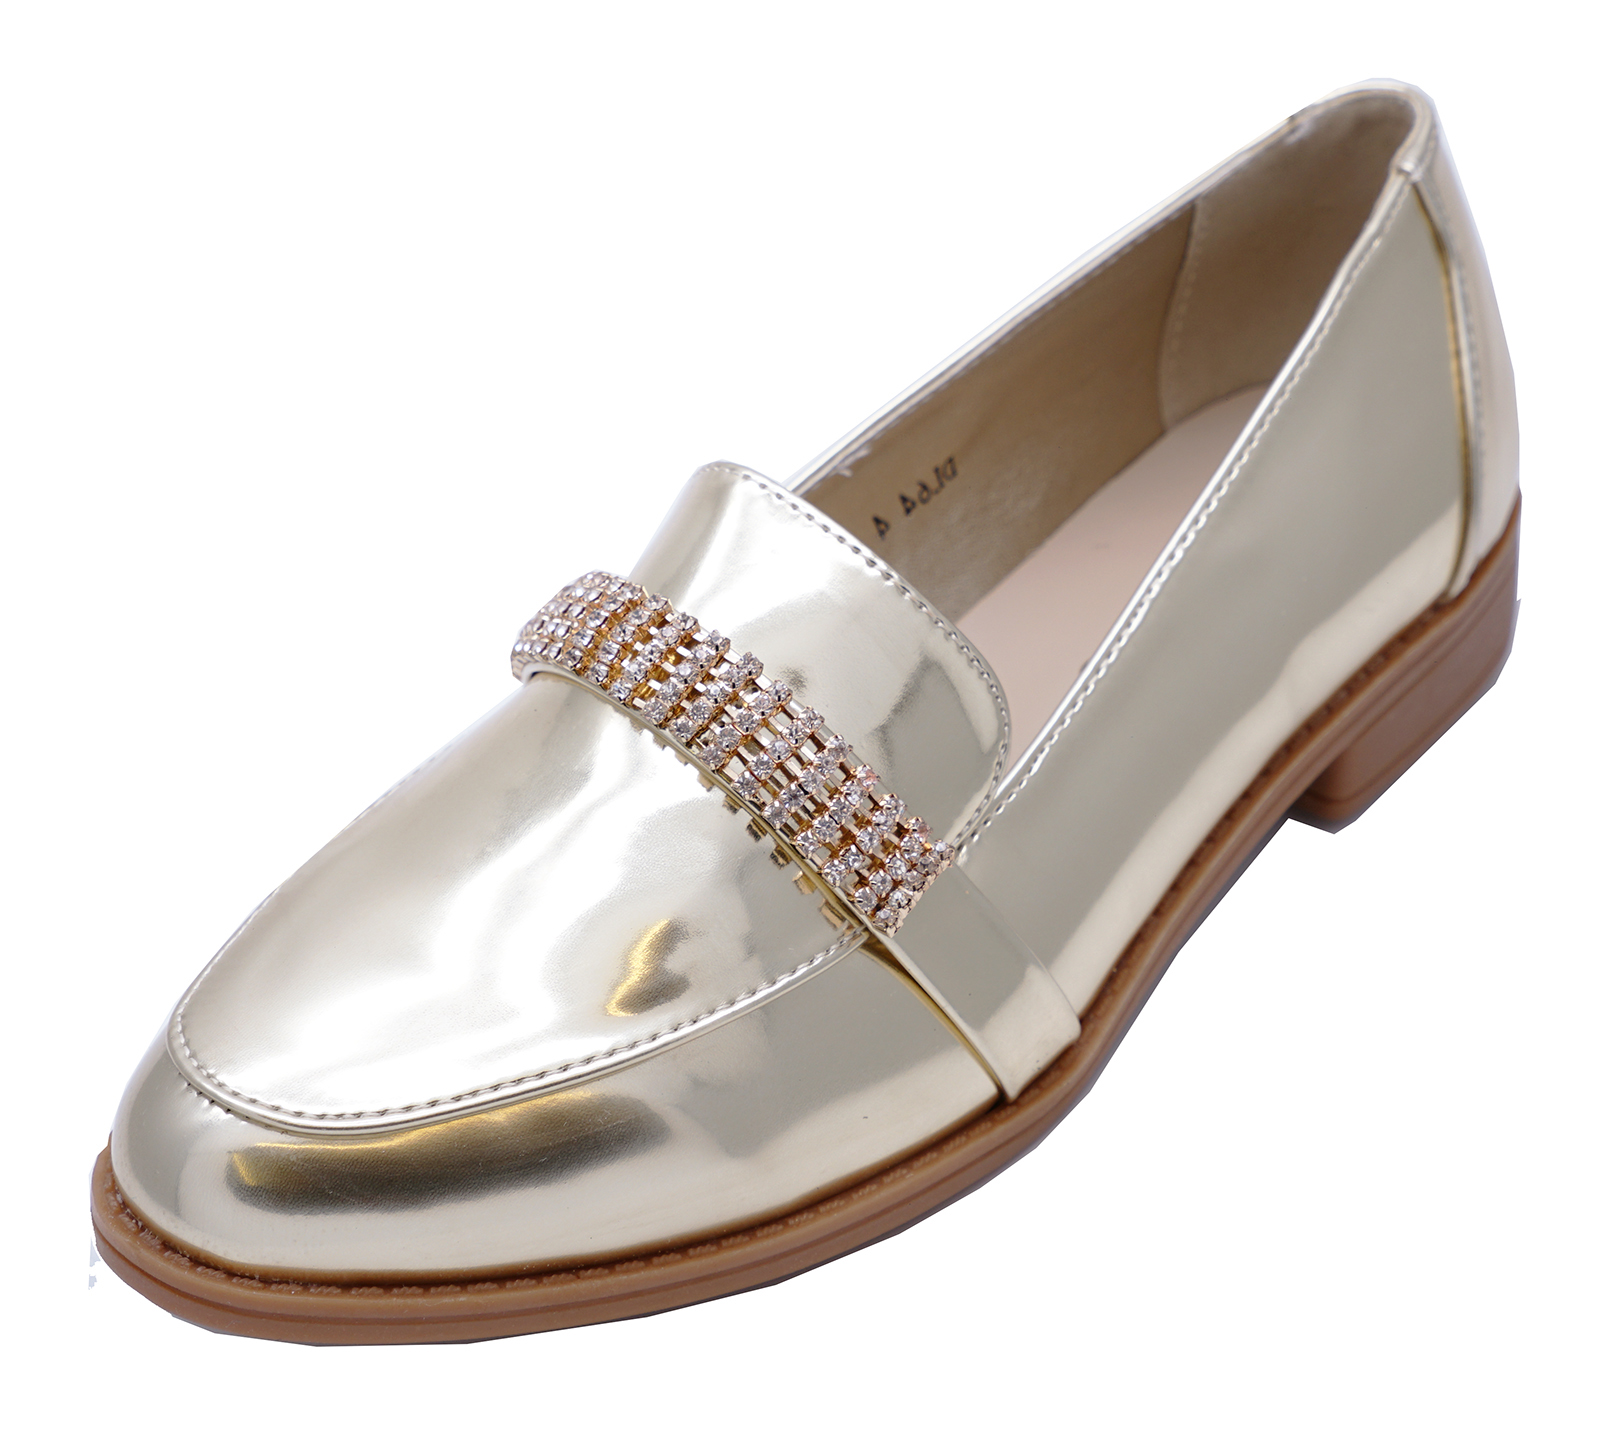 9ac57c76802 Sentinel LADIES GOLD PATENT DIAMANTE SLIP-ON LOAFERS SMART CASUAL COMFY  FLAT SHOES UK 3-